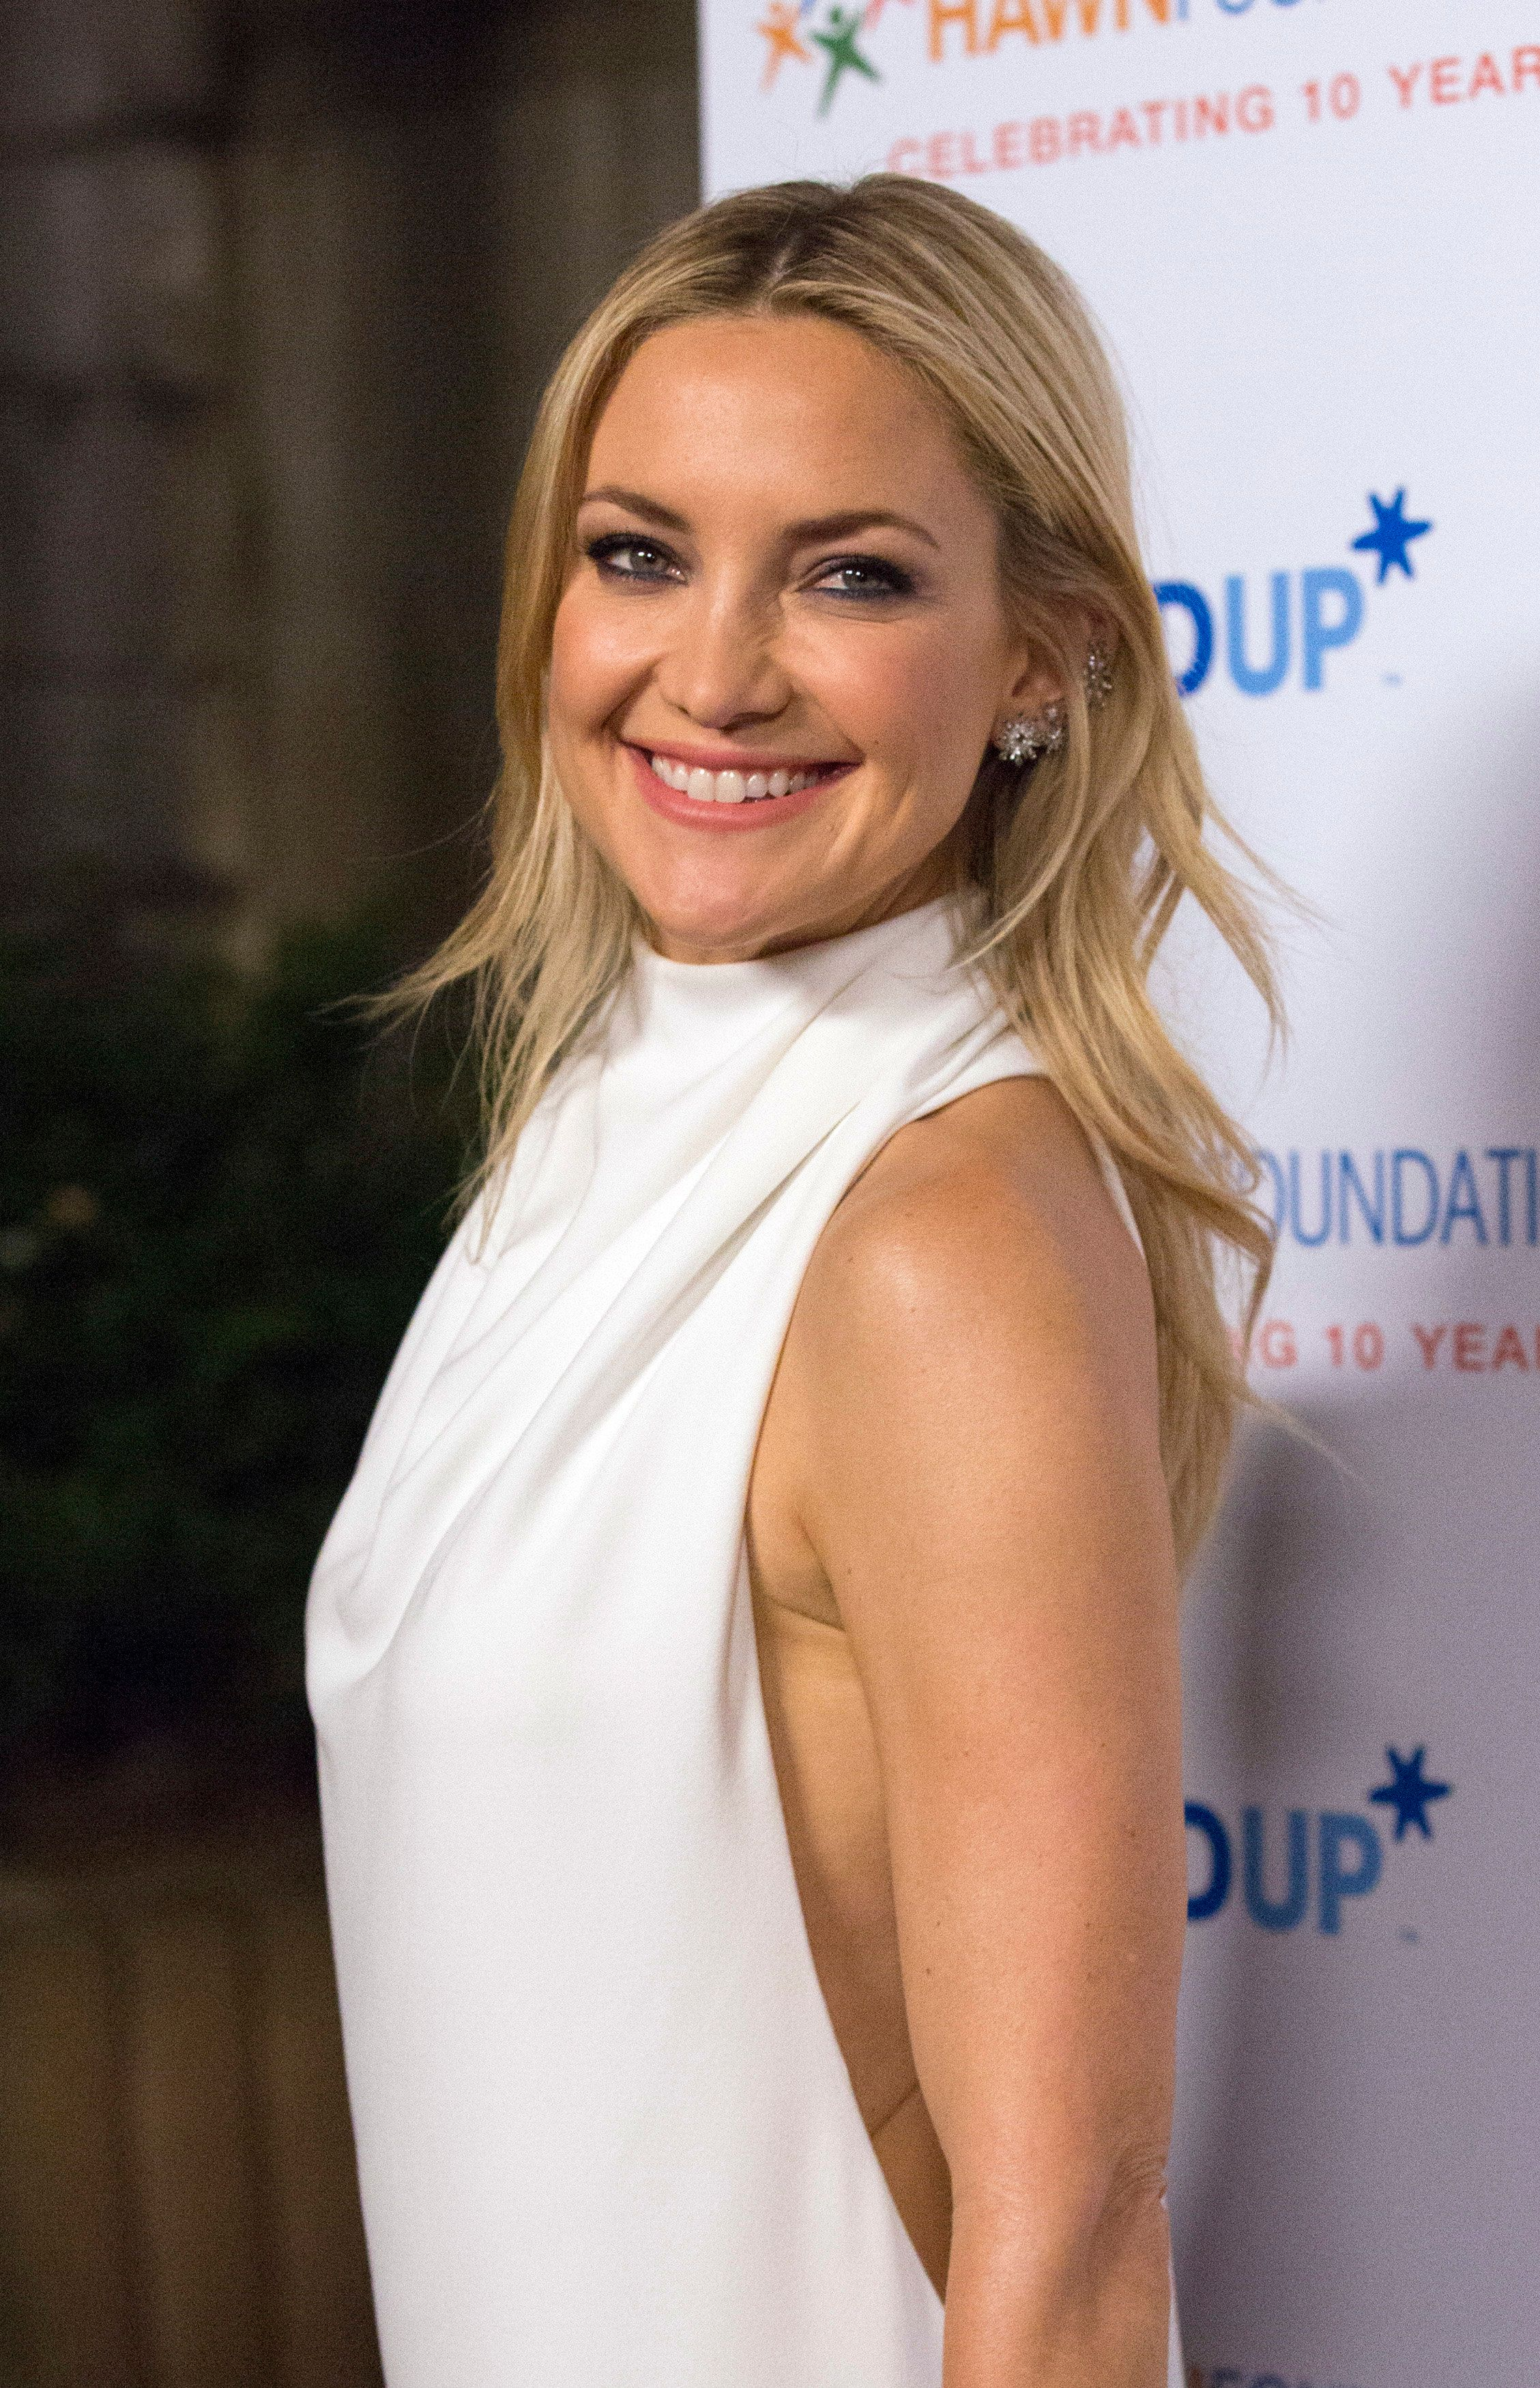 Kate Hudson Explains Social Media Absence With Pregnancy